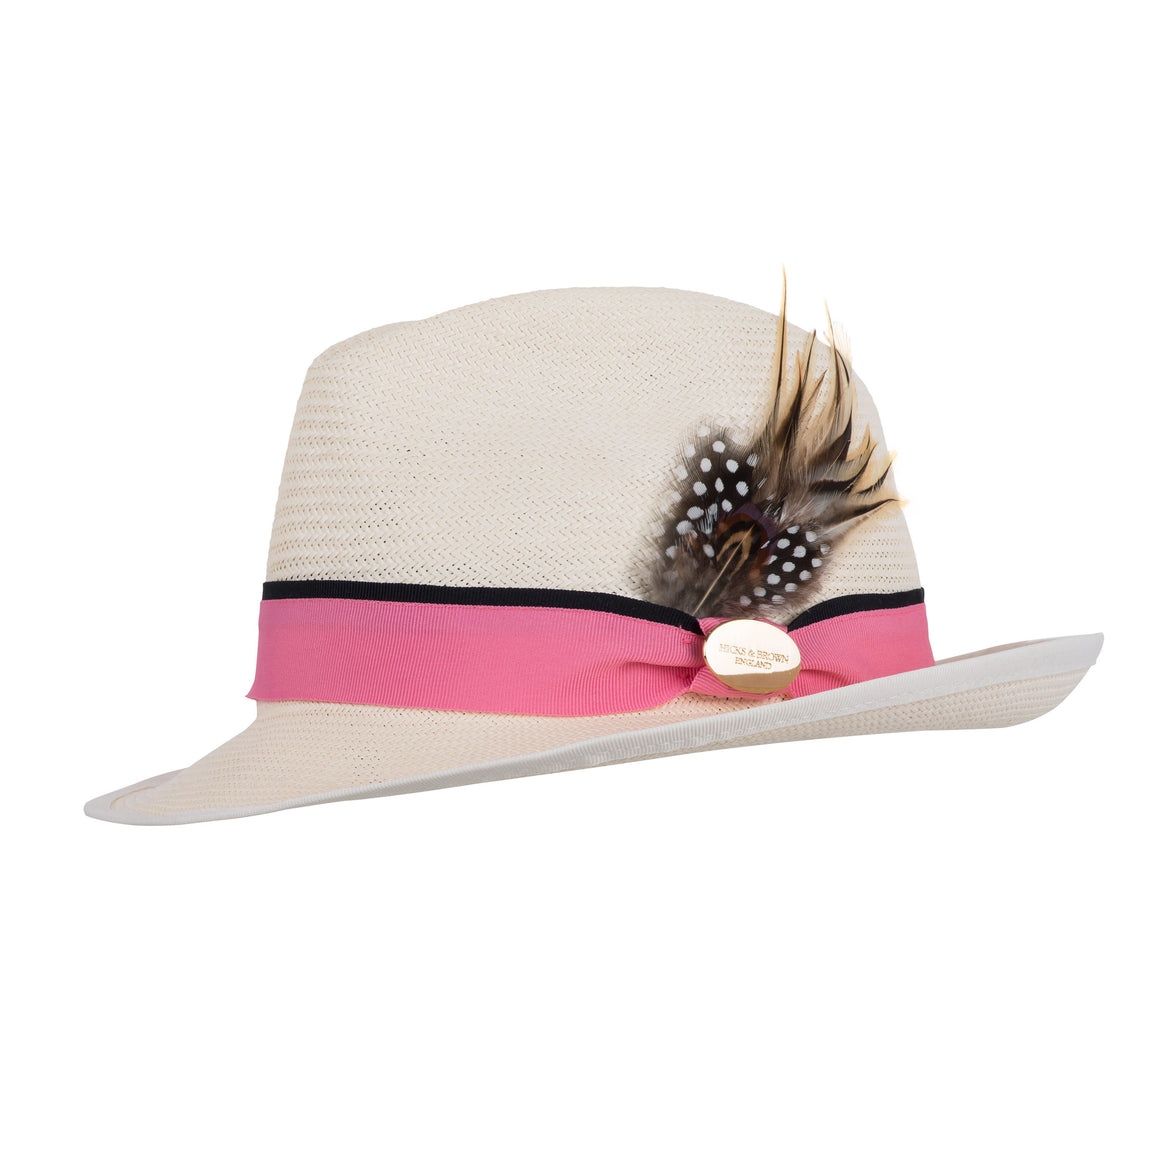 Hicks and Brown The Holkham LUXE Ladies Panama (Pink Ribbon)